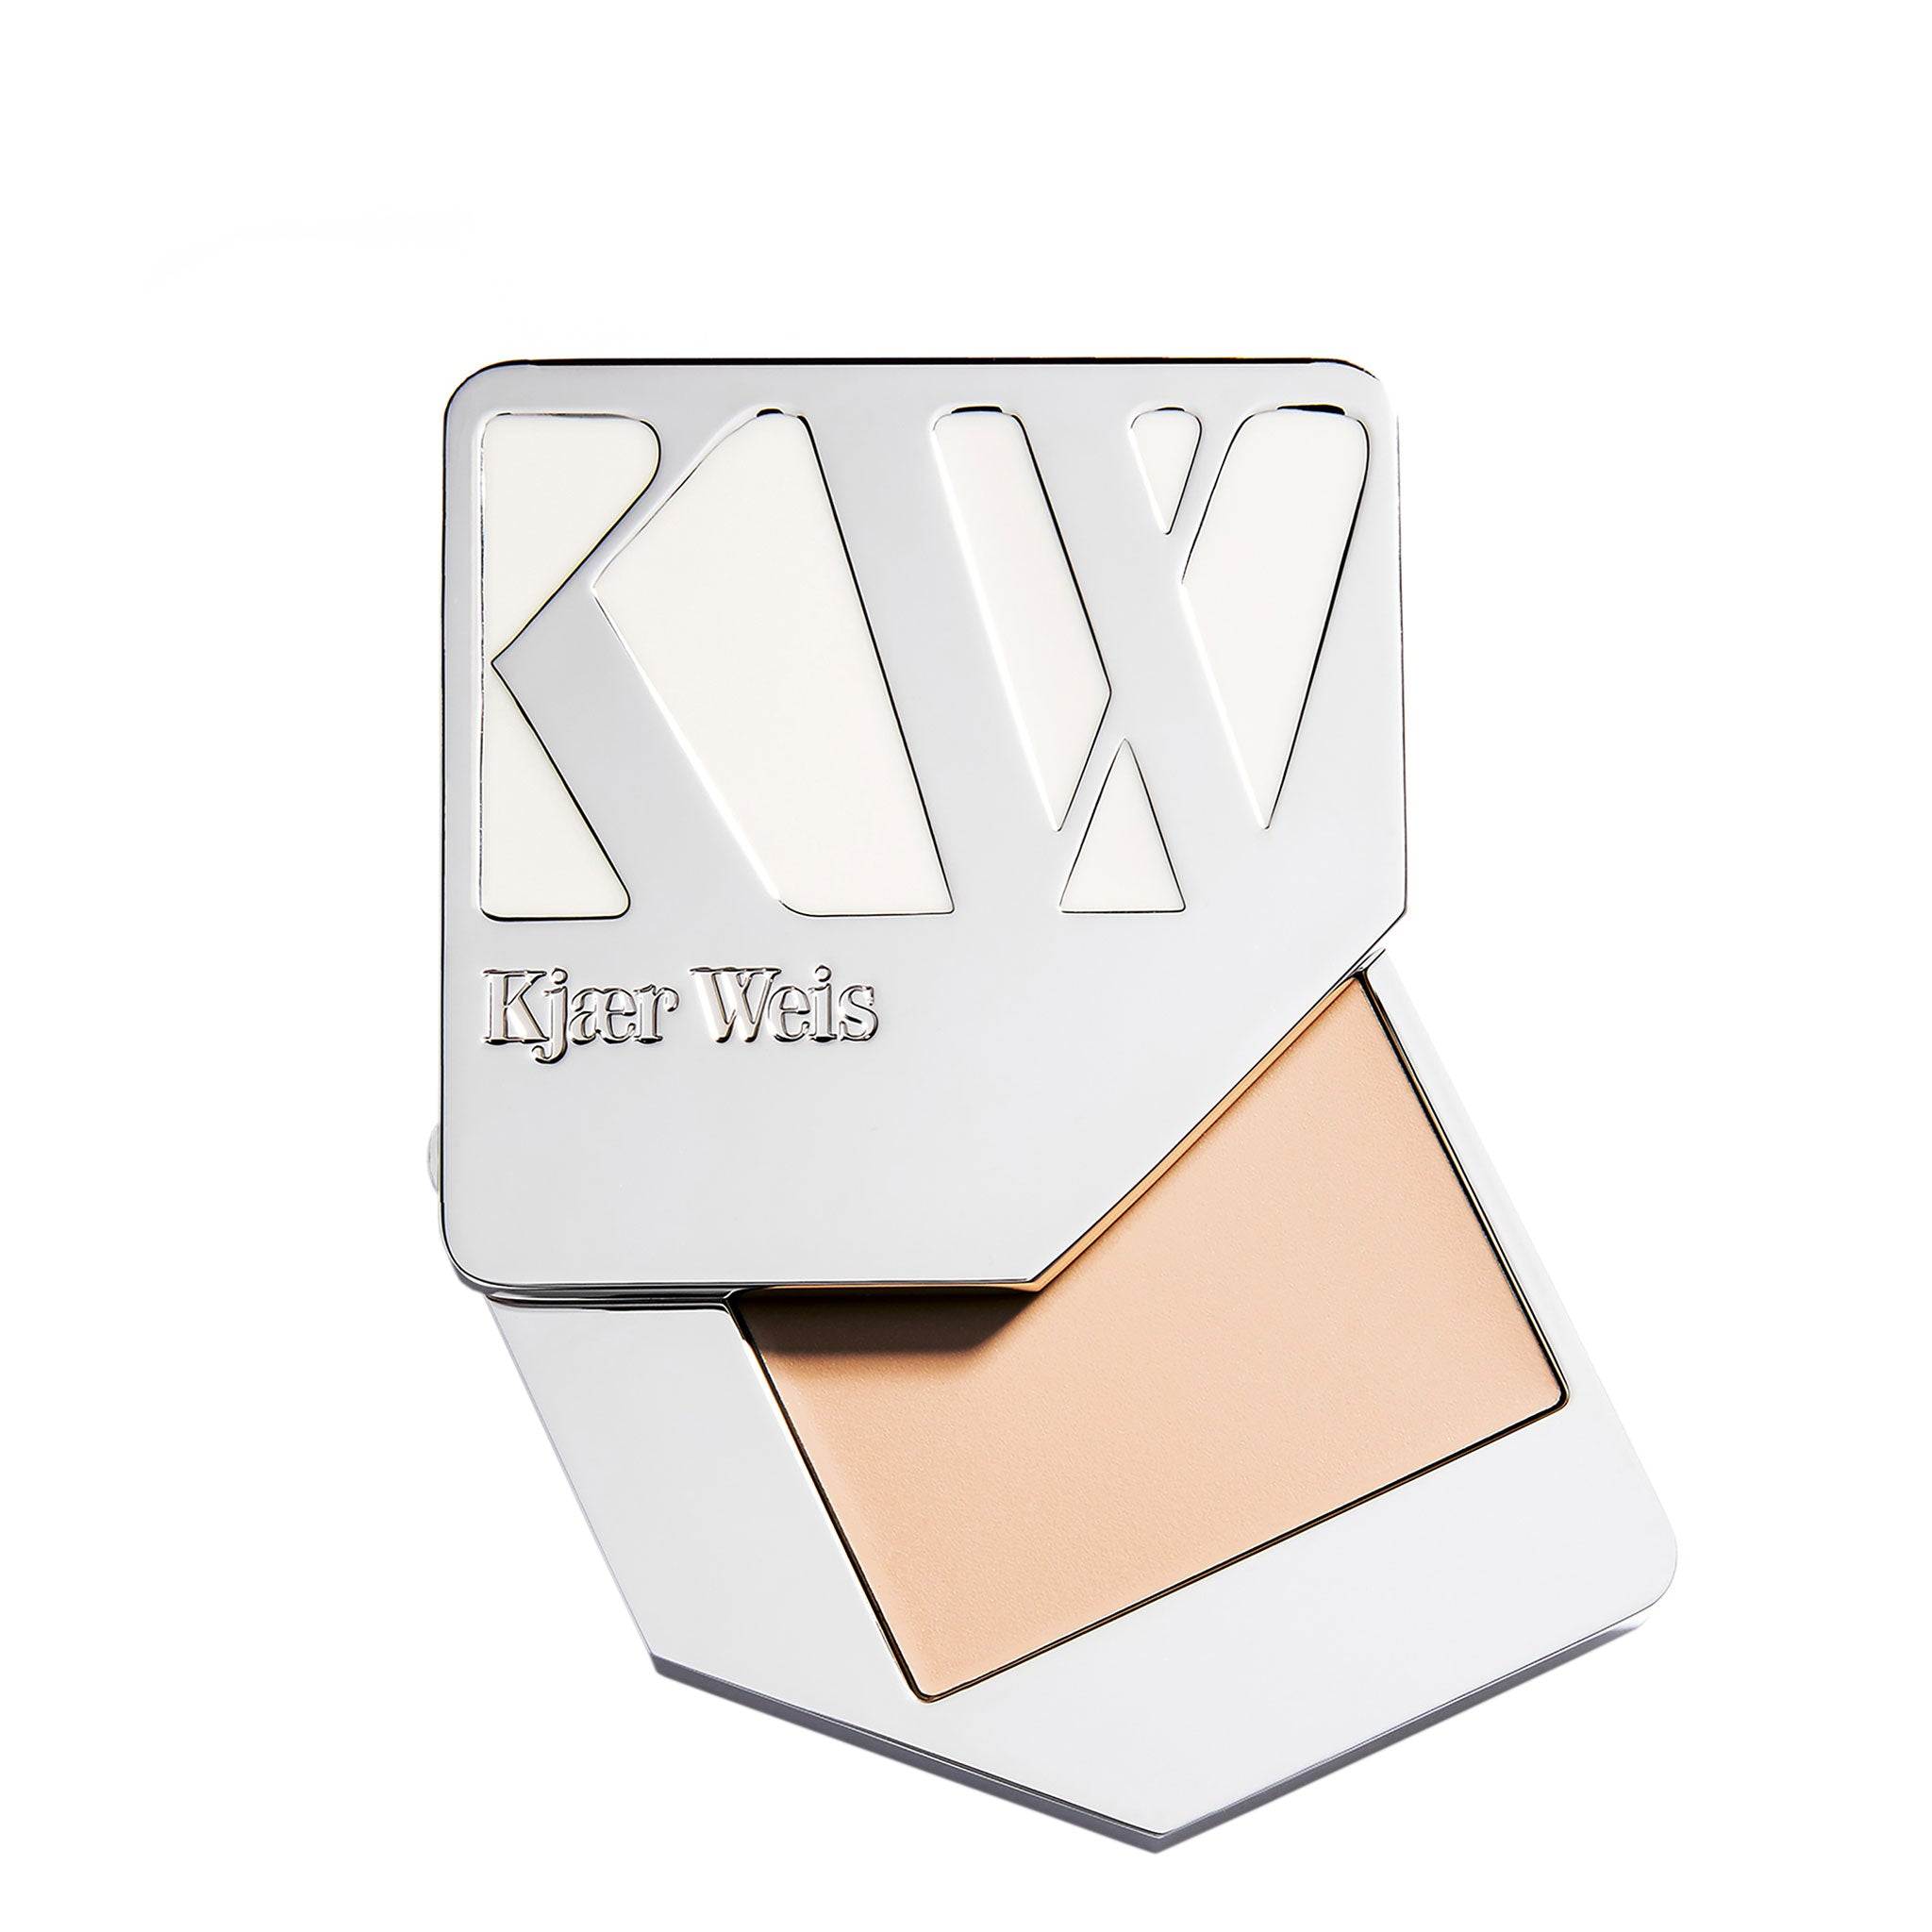 Kjaer Weis Cream Foundation Lightness